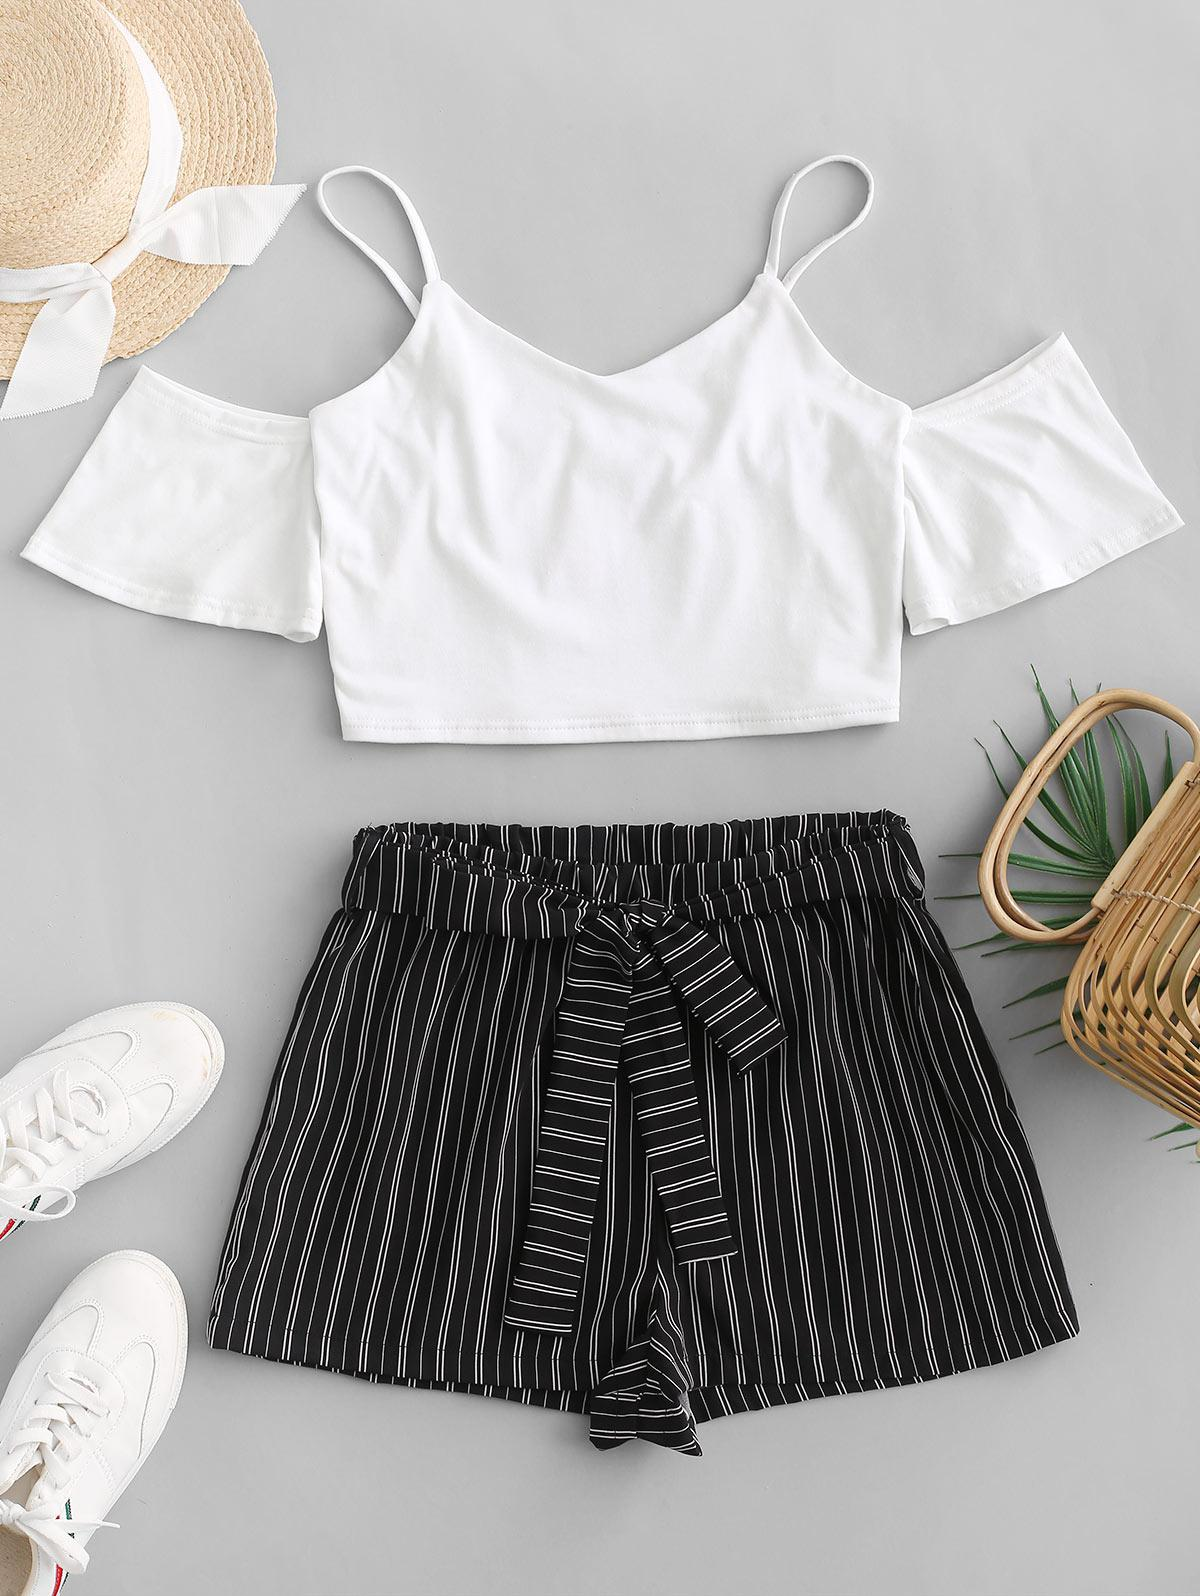 ZAFUL Crop Cami Top and Striped Belted Shorts Set, White